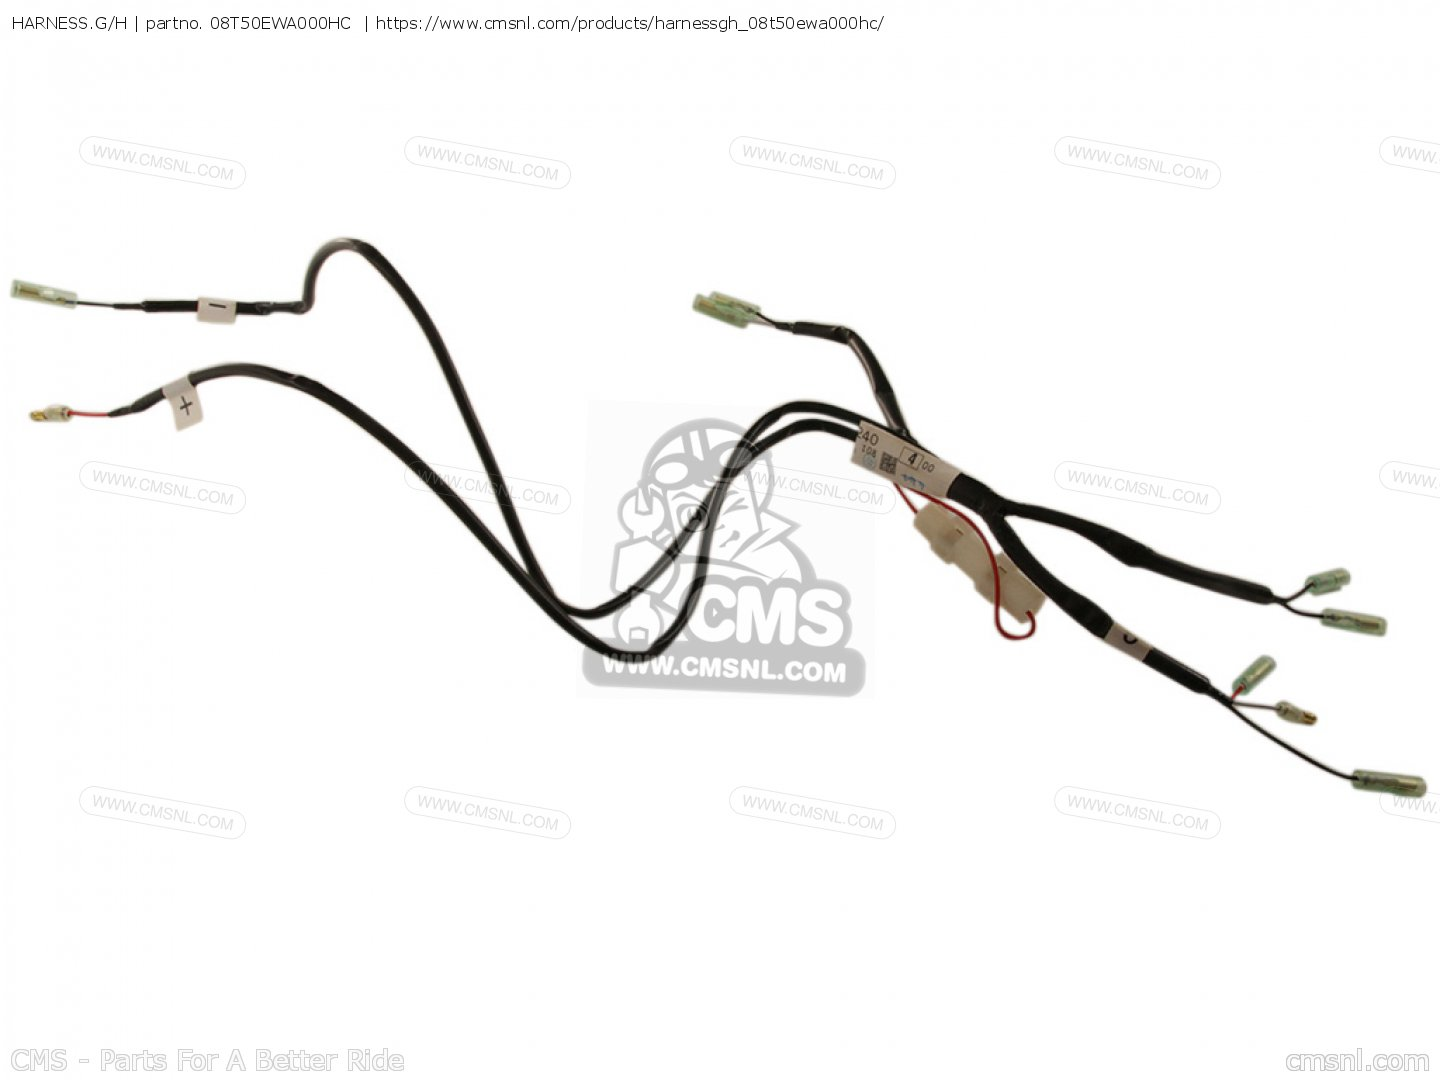 Harness G H For Nt700v 8 European Direct Sales